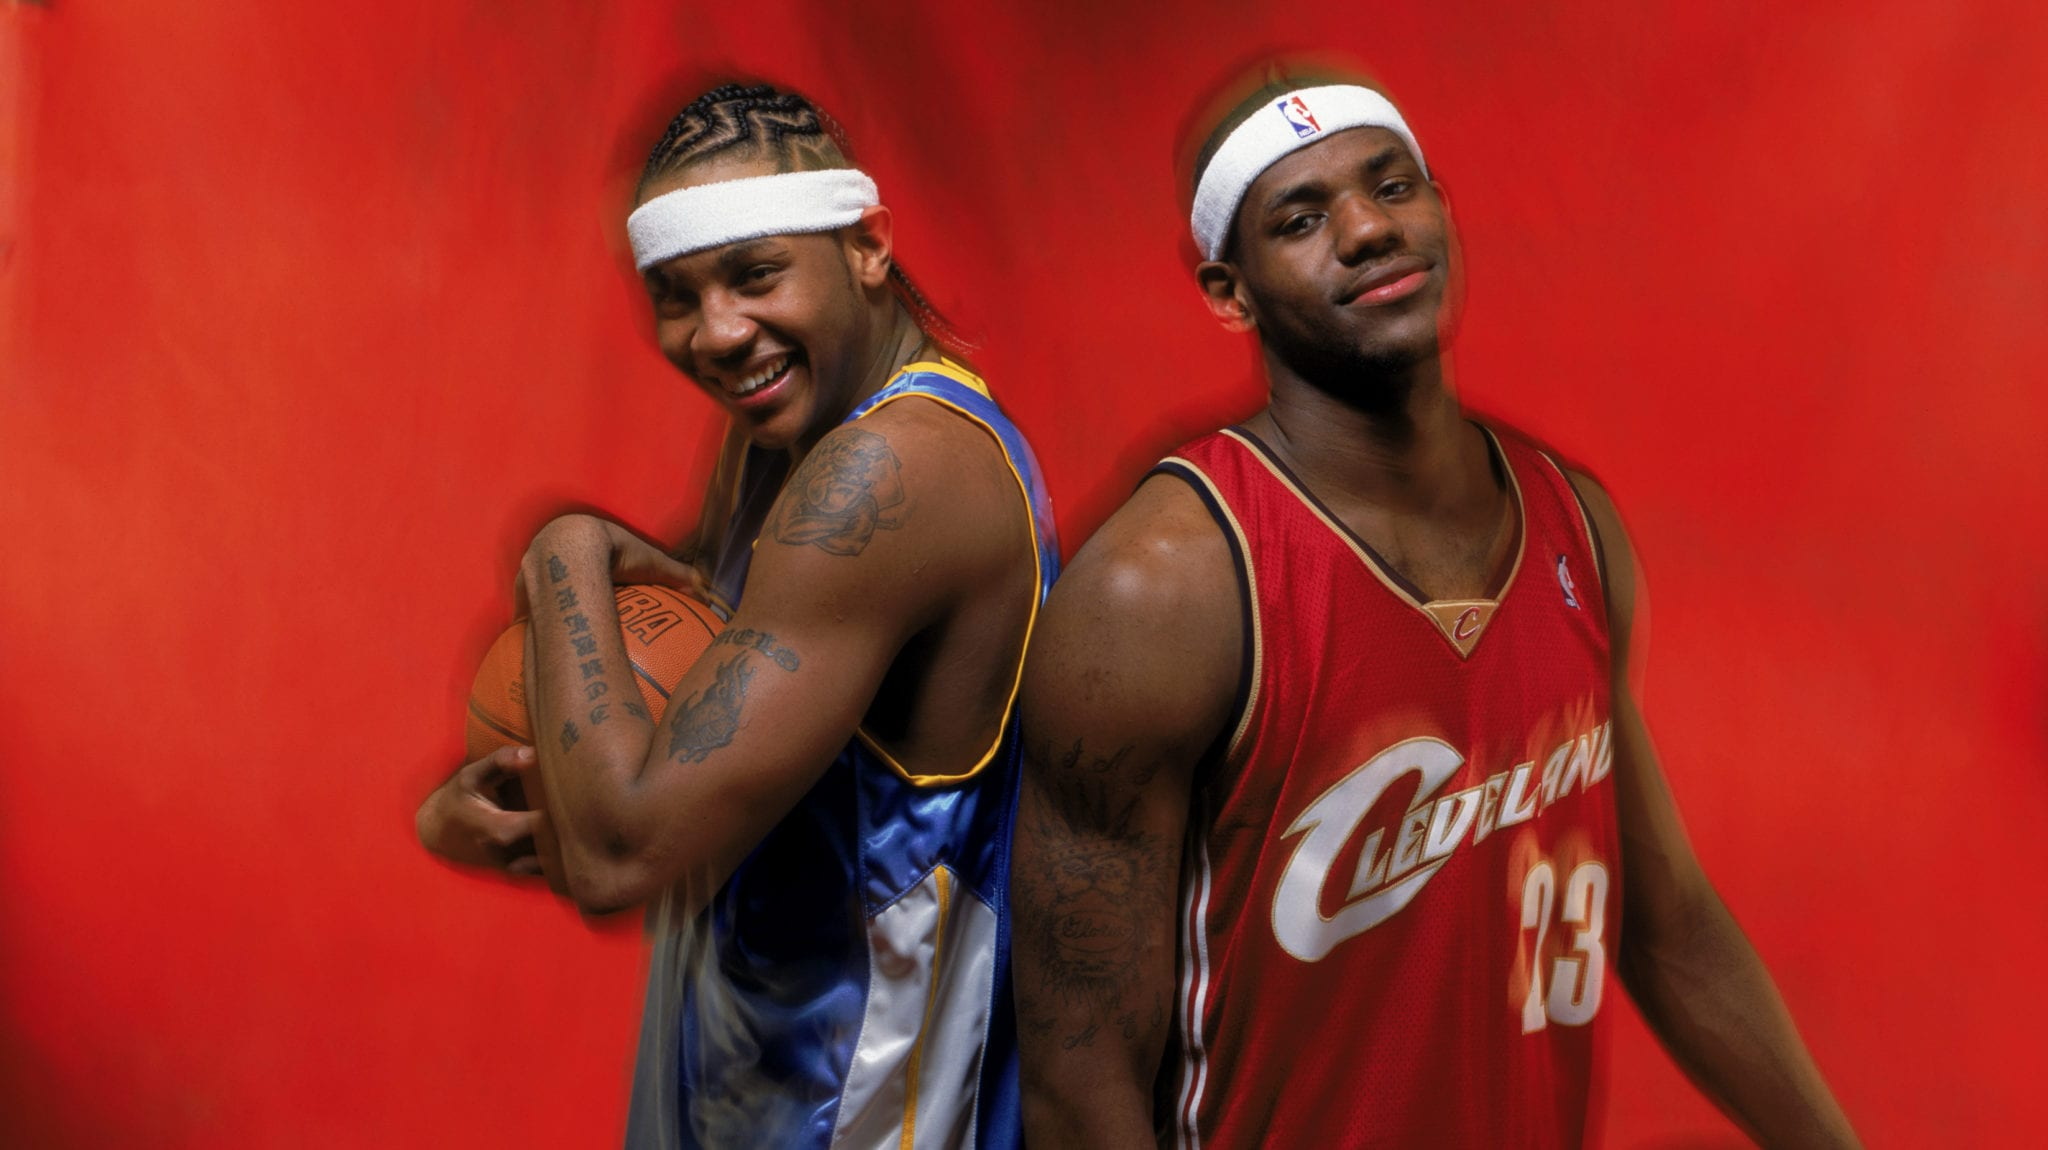 The Day LeBron James Saved Carmelo Anthony's Life